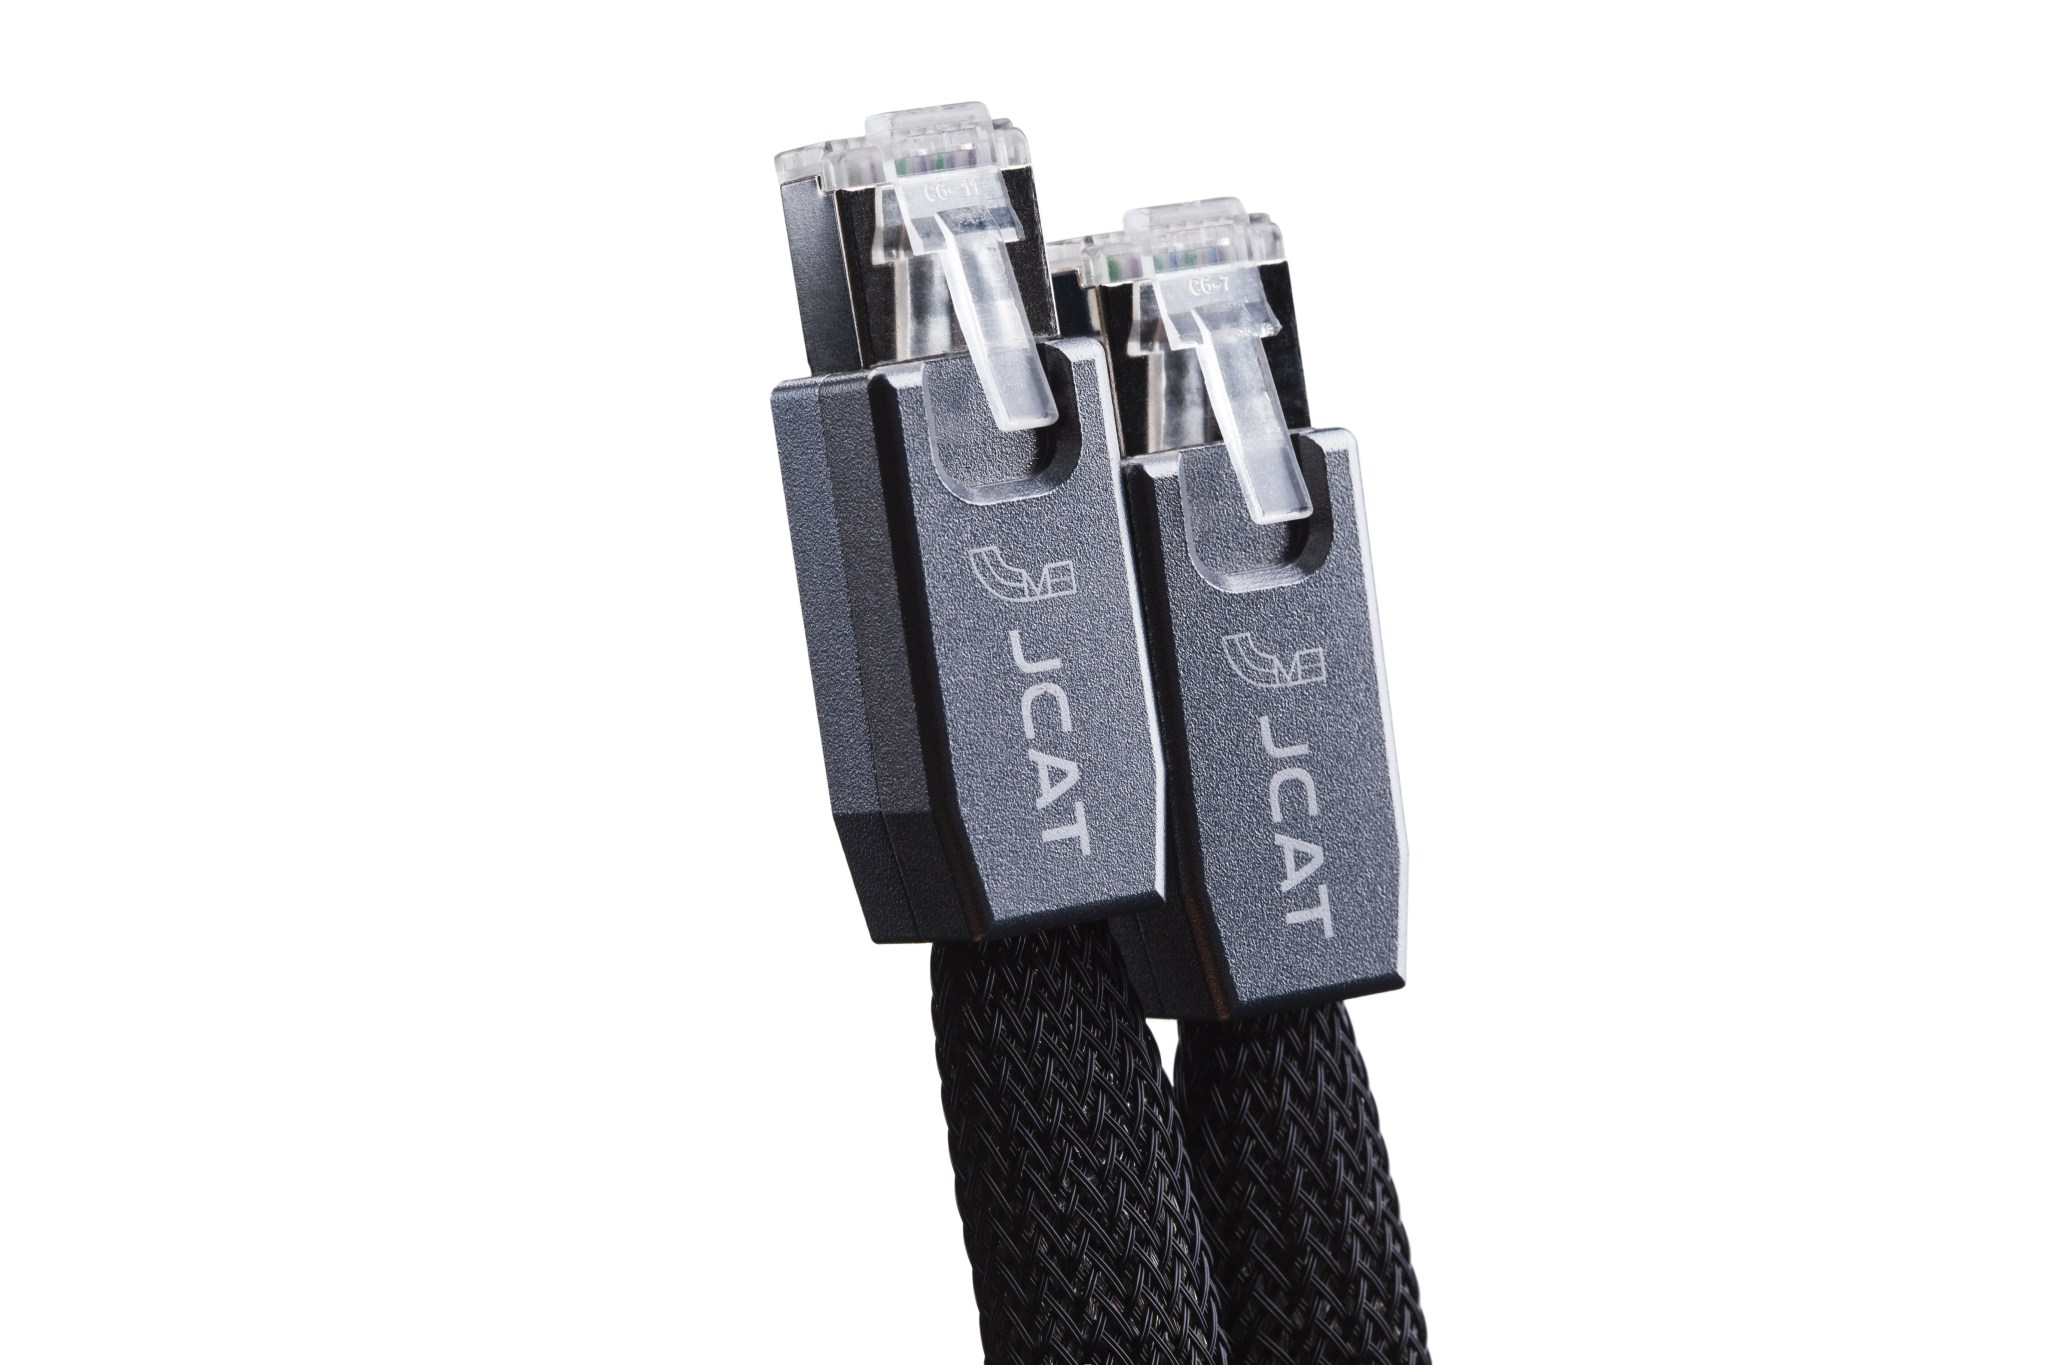 JCAT LAN Cable. Hi-end ethernet cable for music servers and audiophile streamers